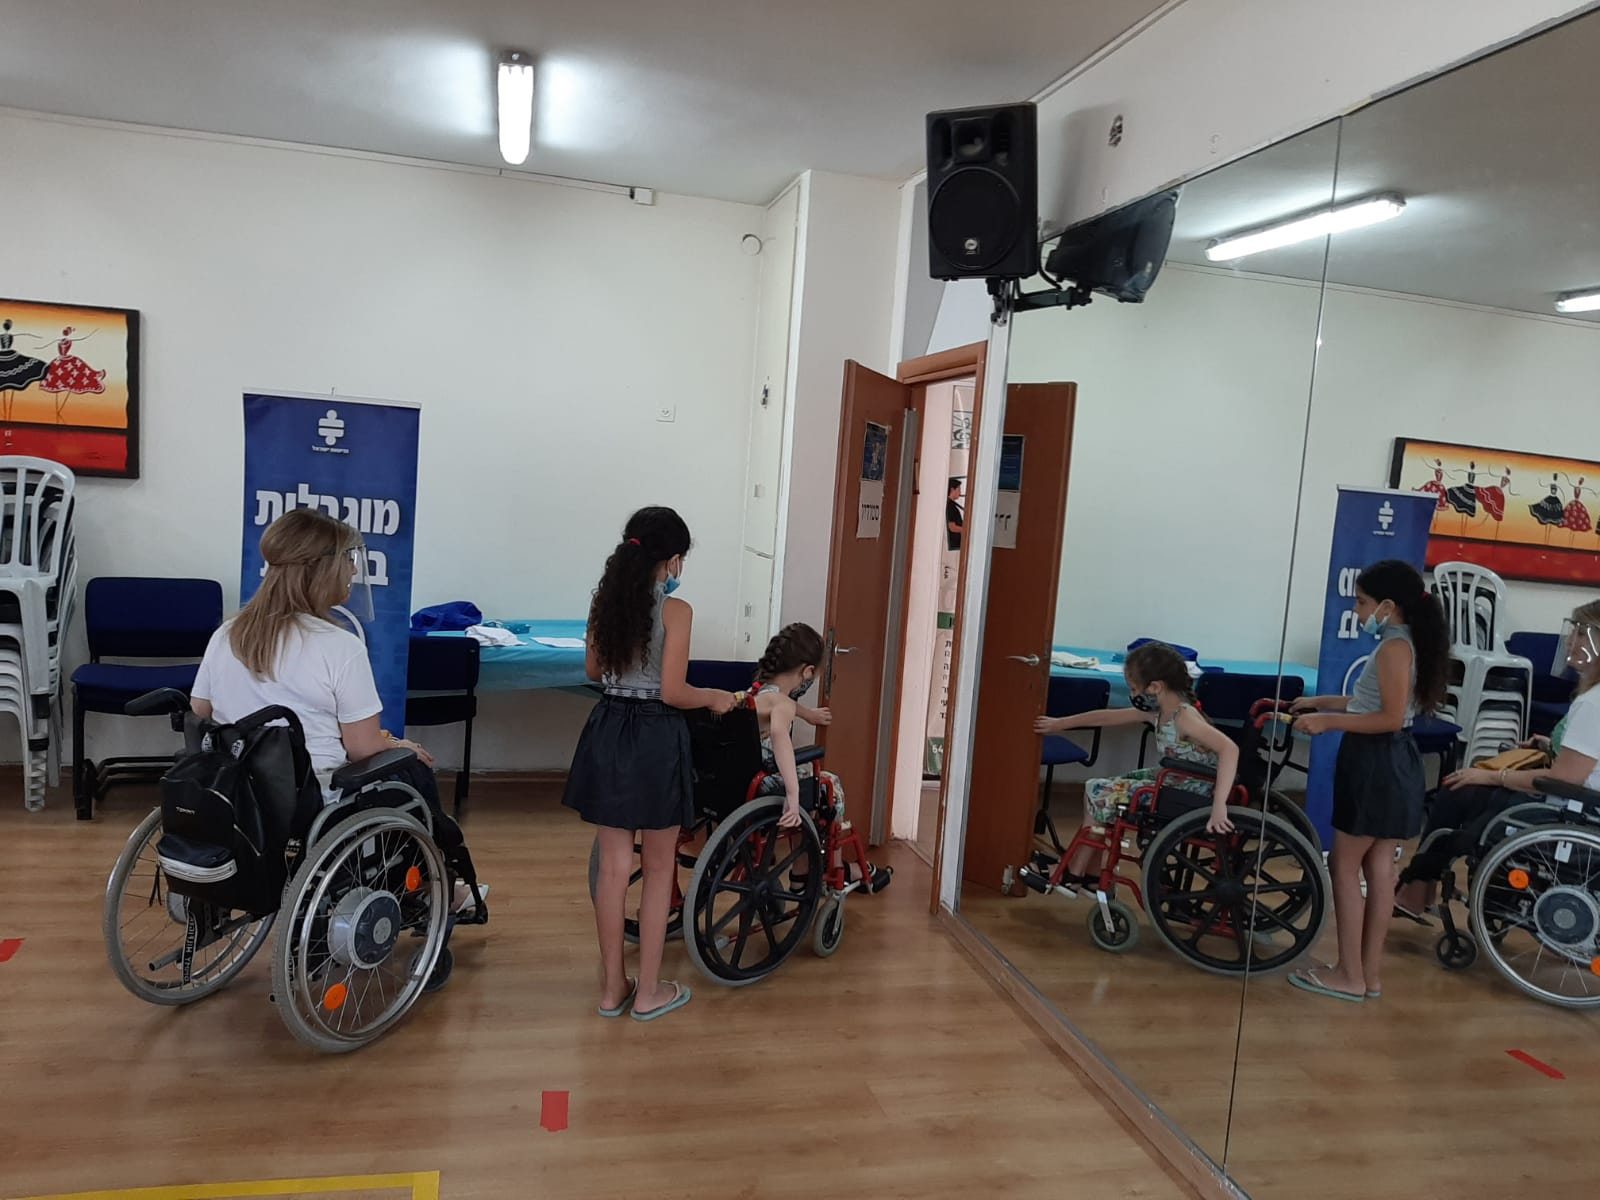 The children  experienced challenges that a person in a wheelchair faces when there is no accessibility